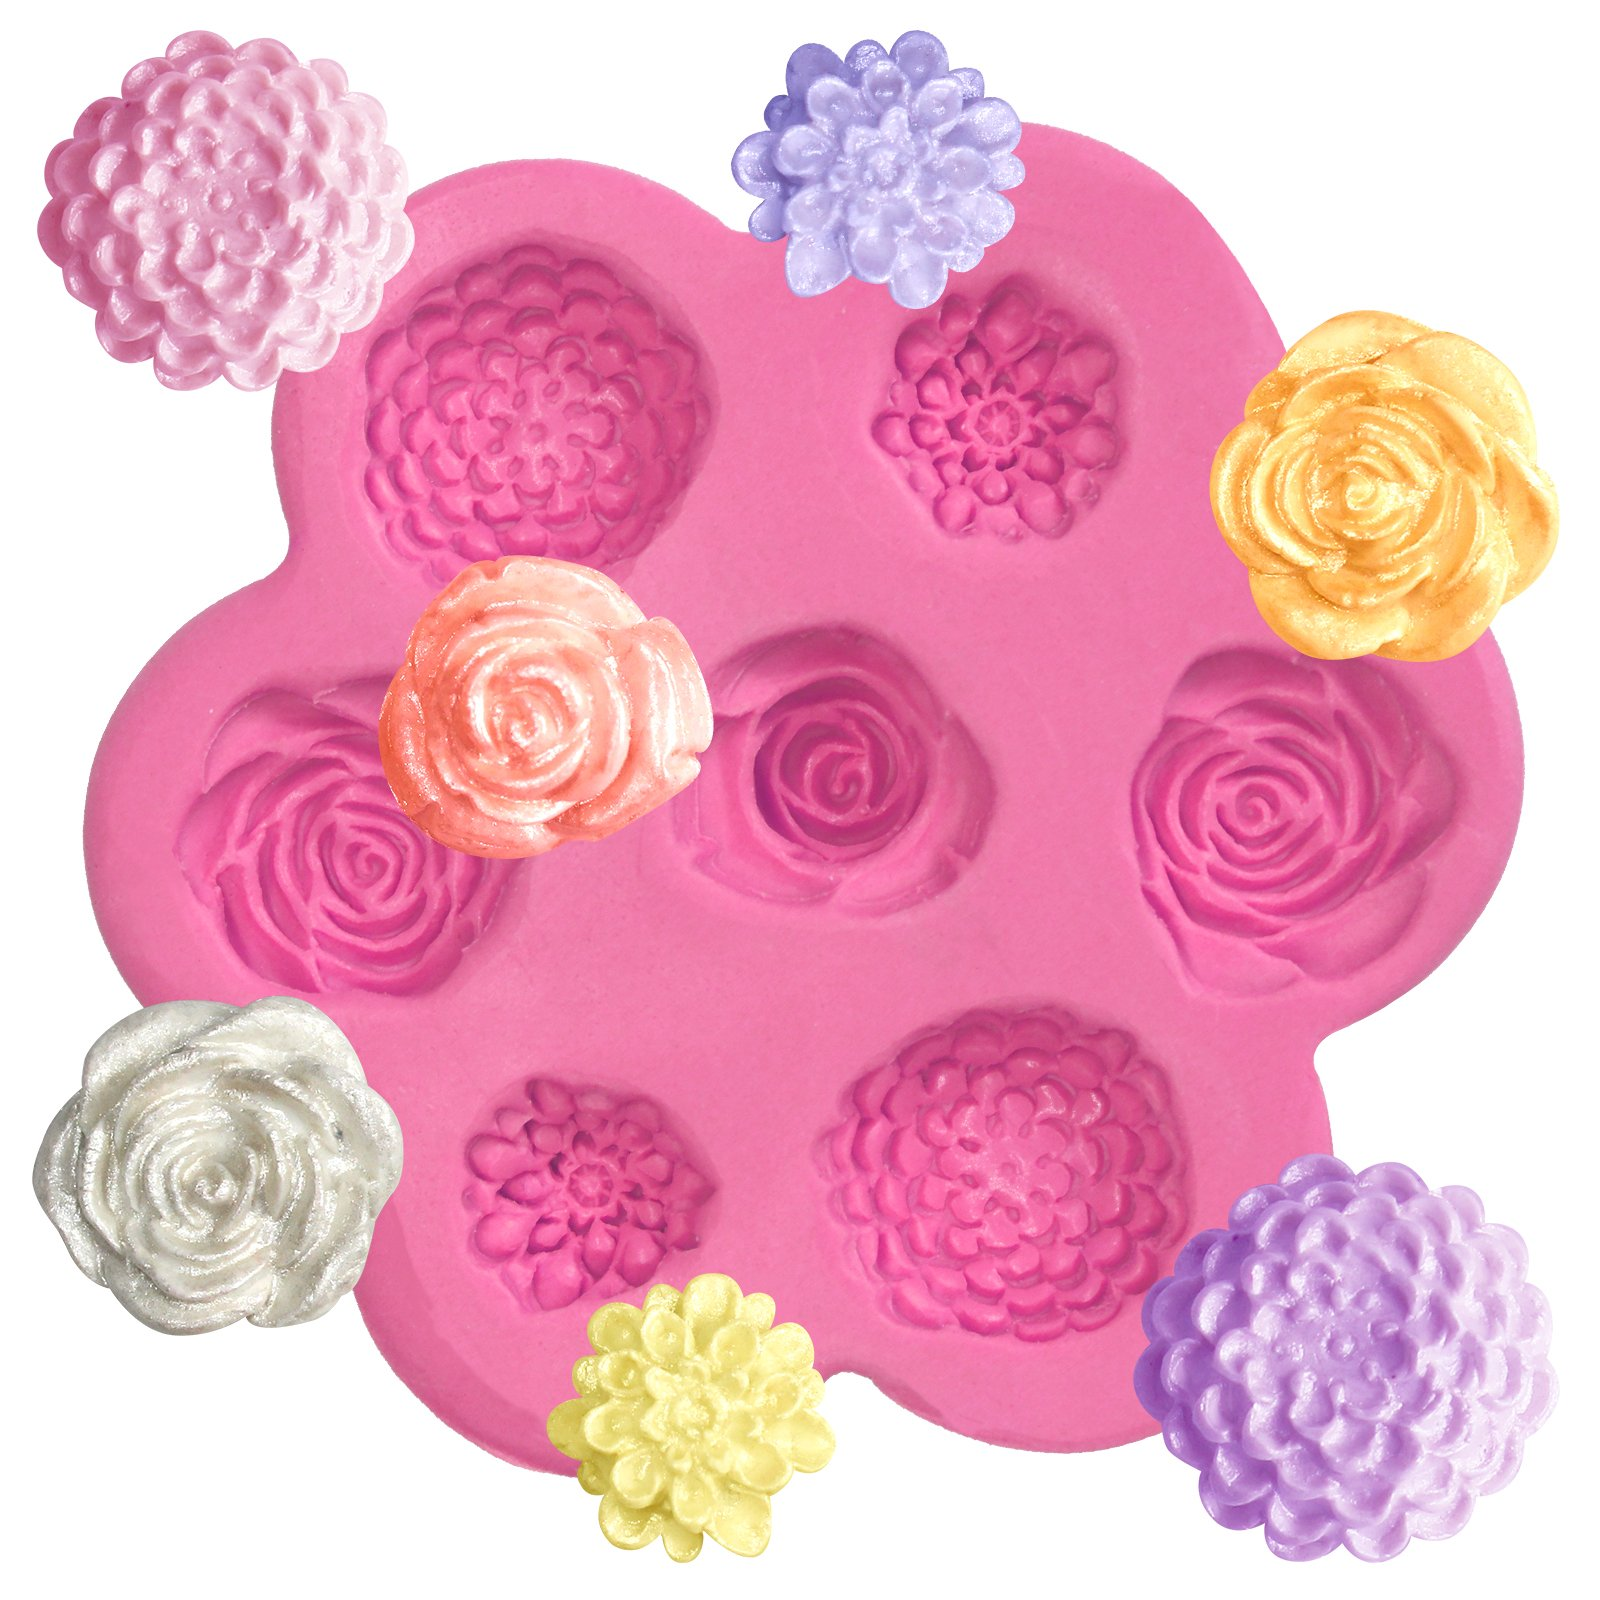 BBTO 27 Cavity Flower Fondant Mold Roses Silicone Mold Daisy Mold for Cake Decoration Soap Wax Making Crafting Projects Cupcake Topper Polymer Clay